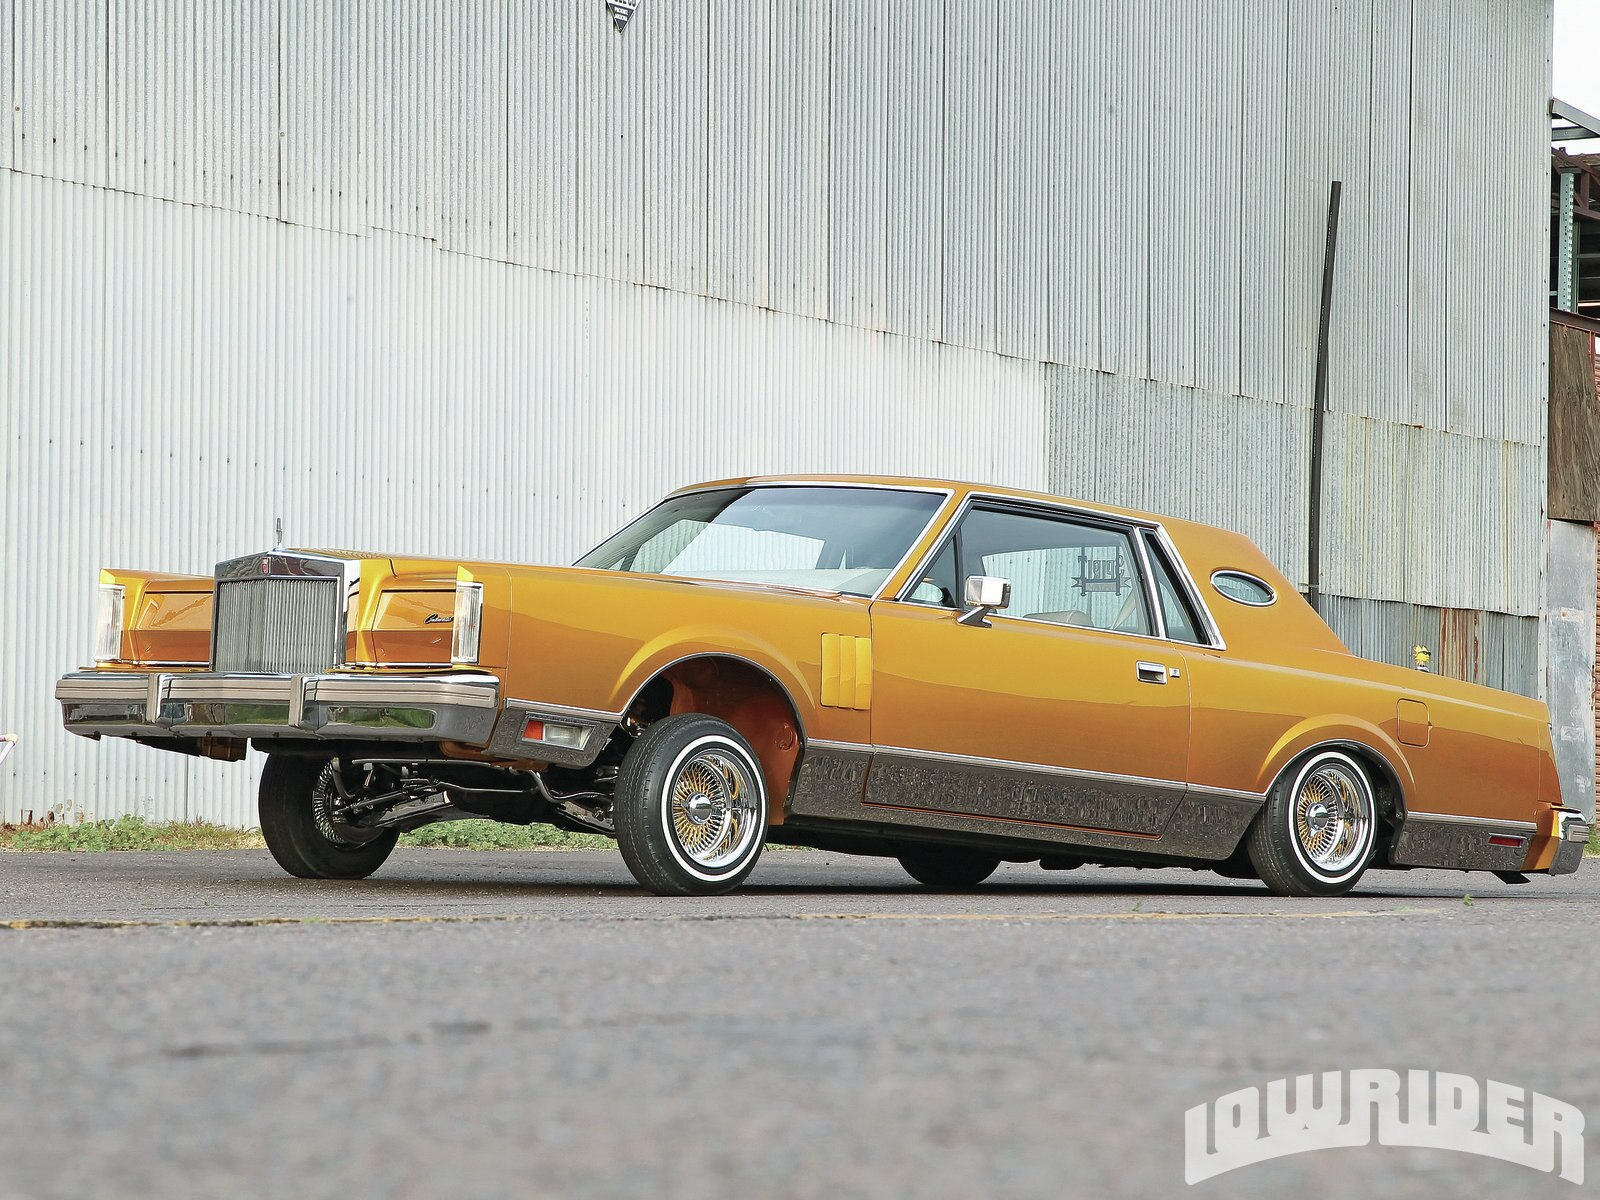 1303-lrmp-10-o-1983-lincoln-continental-front-left-side-view1